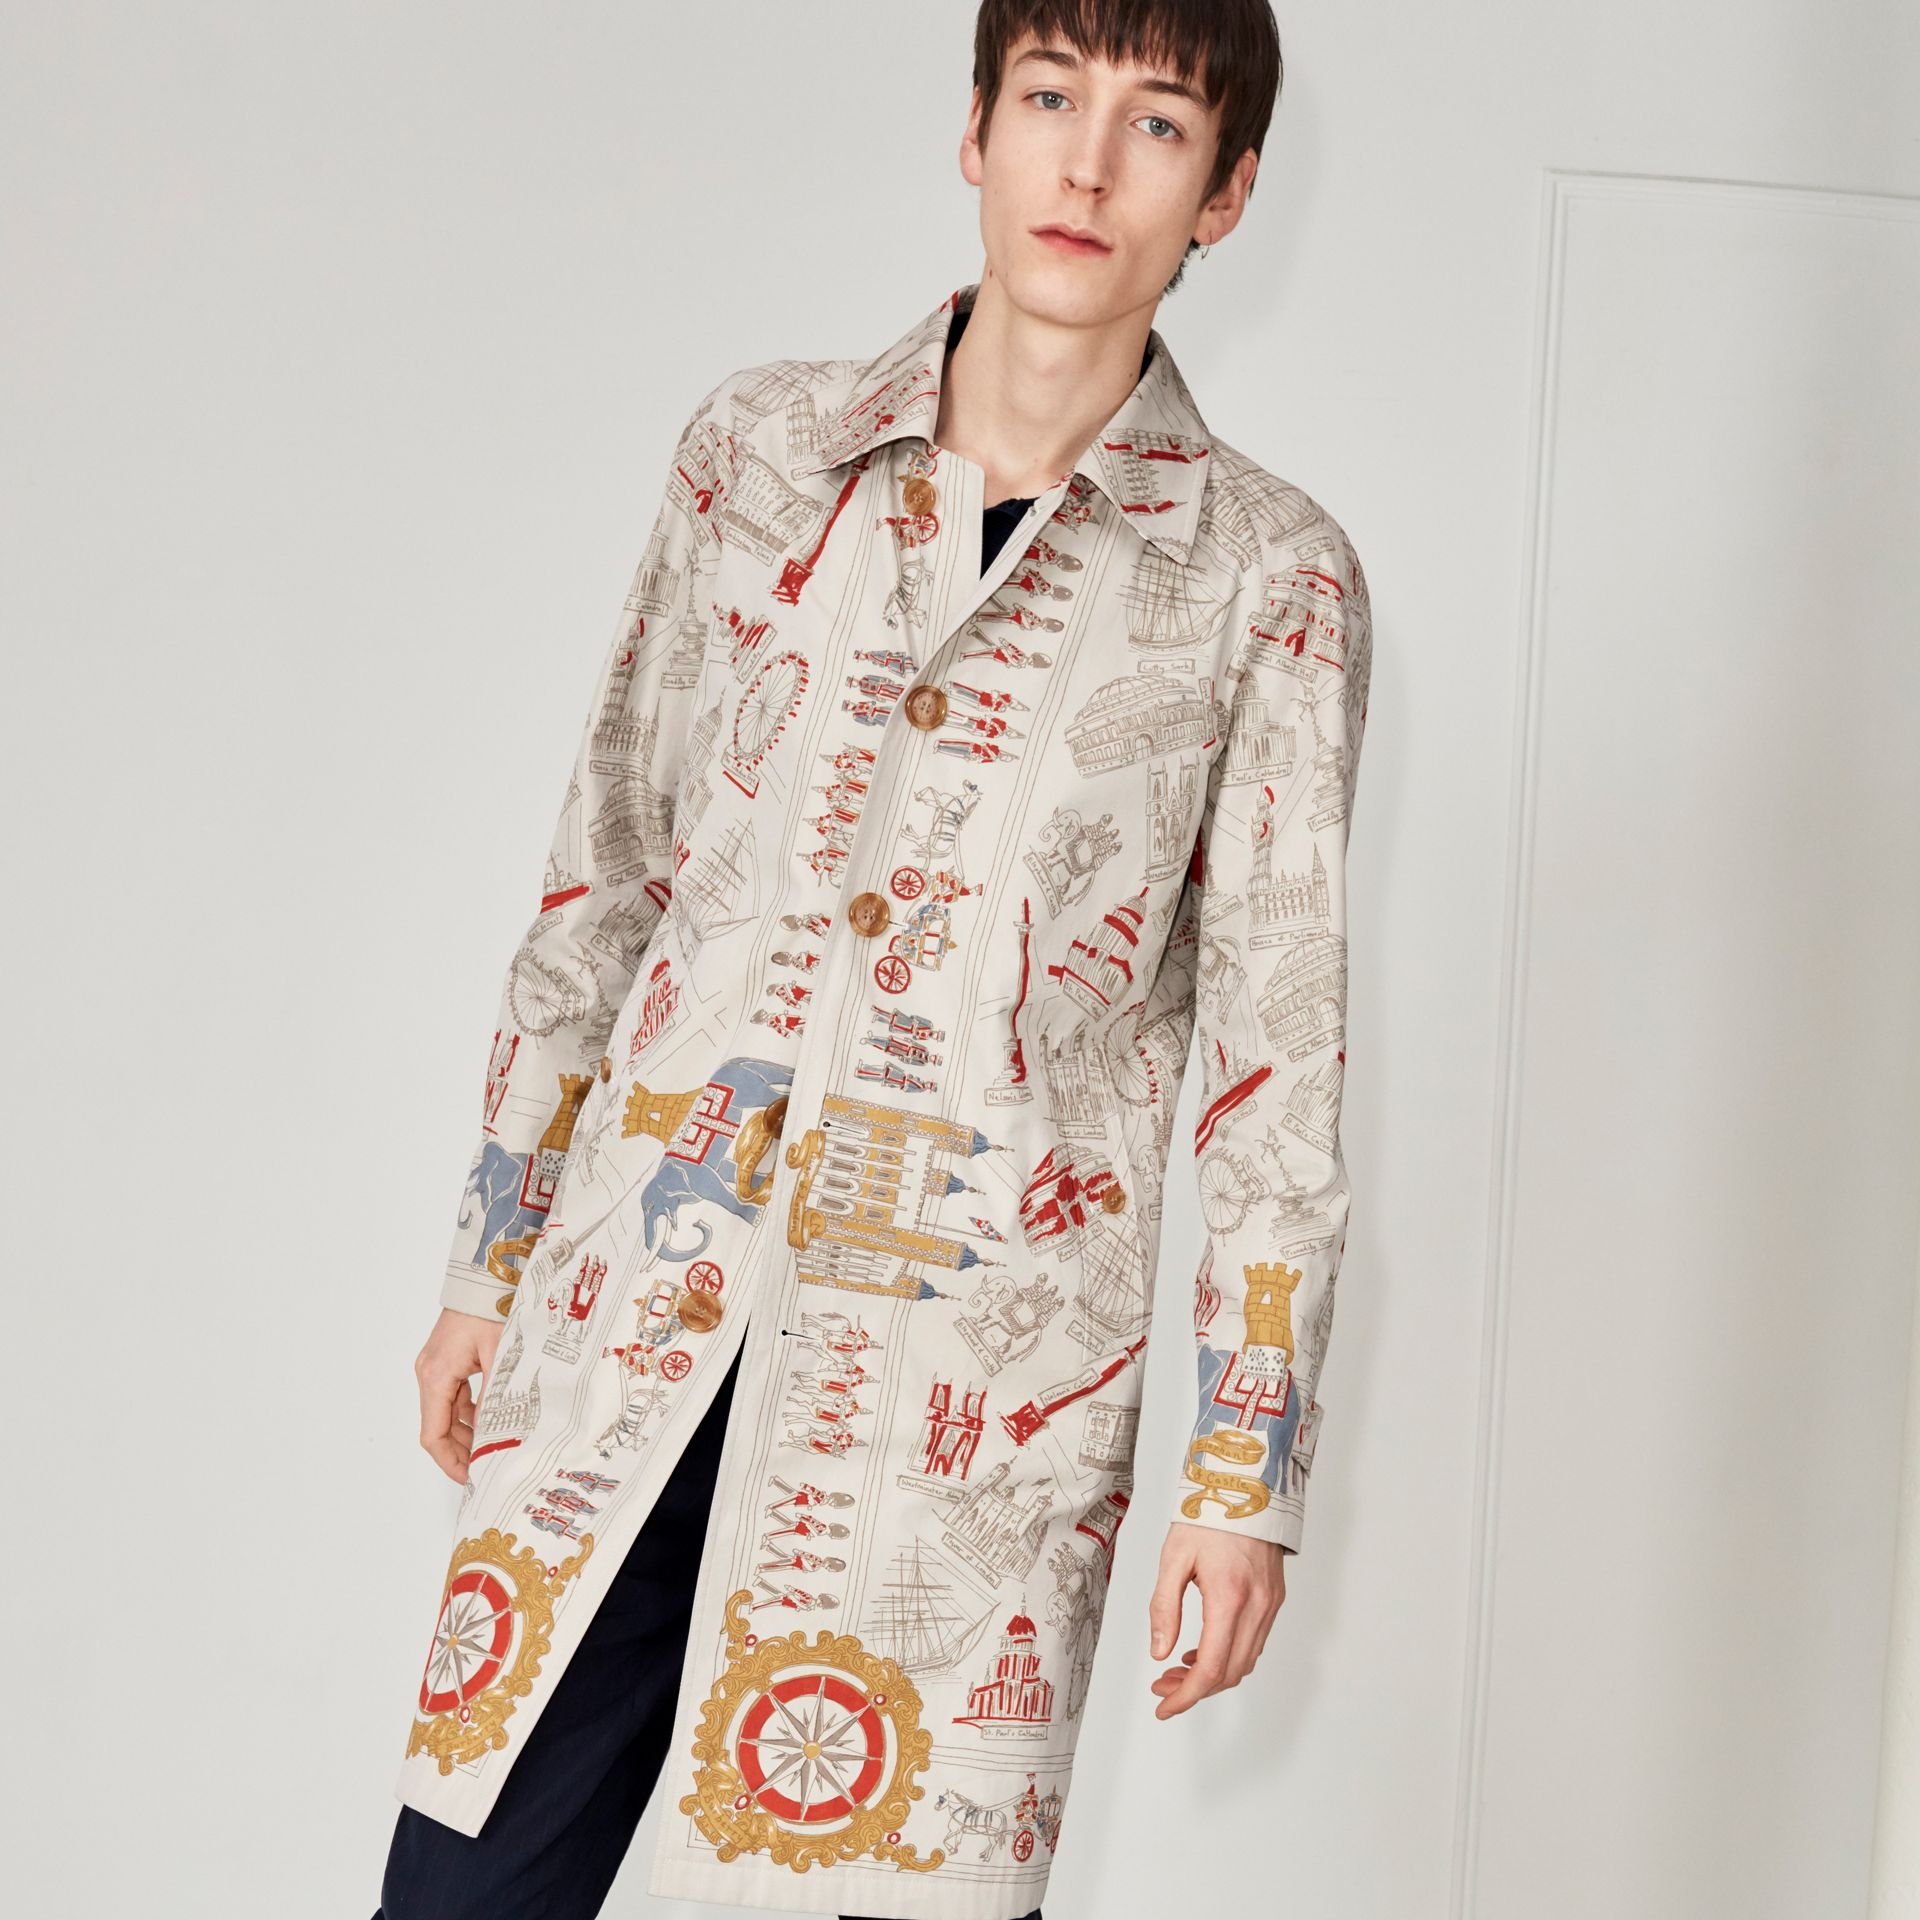 London Sketch Print Car Coat in Stone - Men | Burberry - gallery image 4